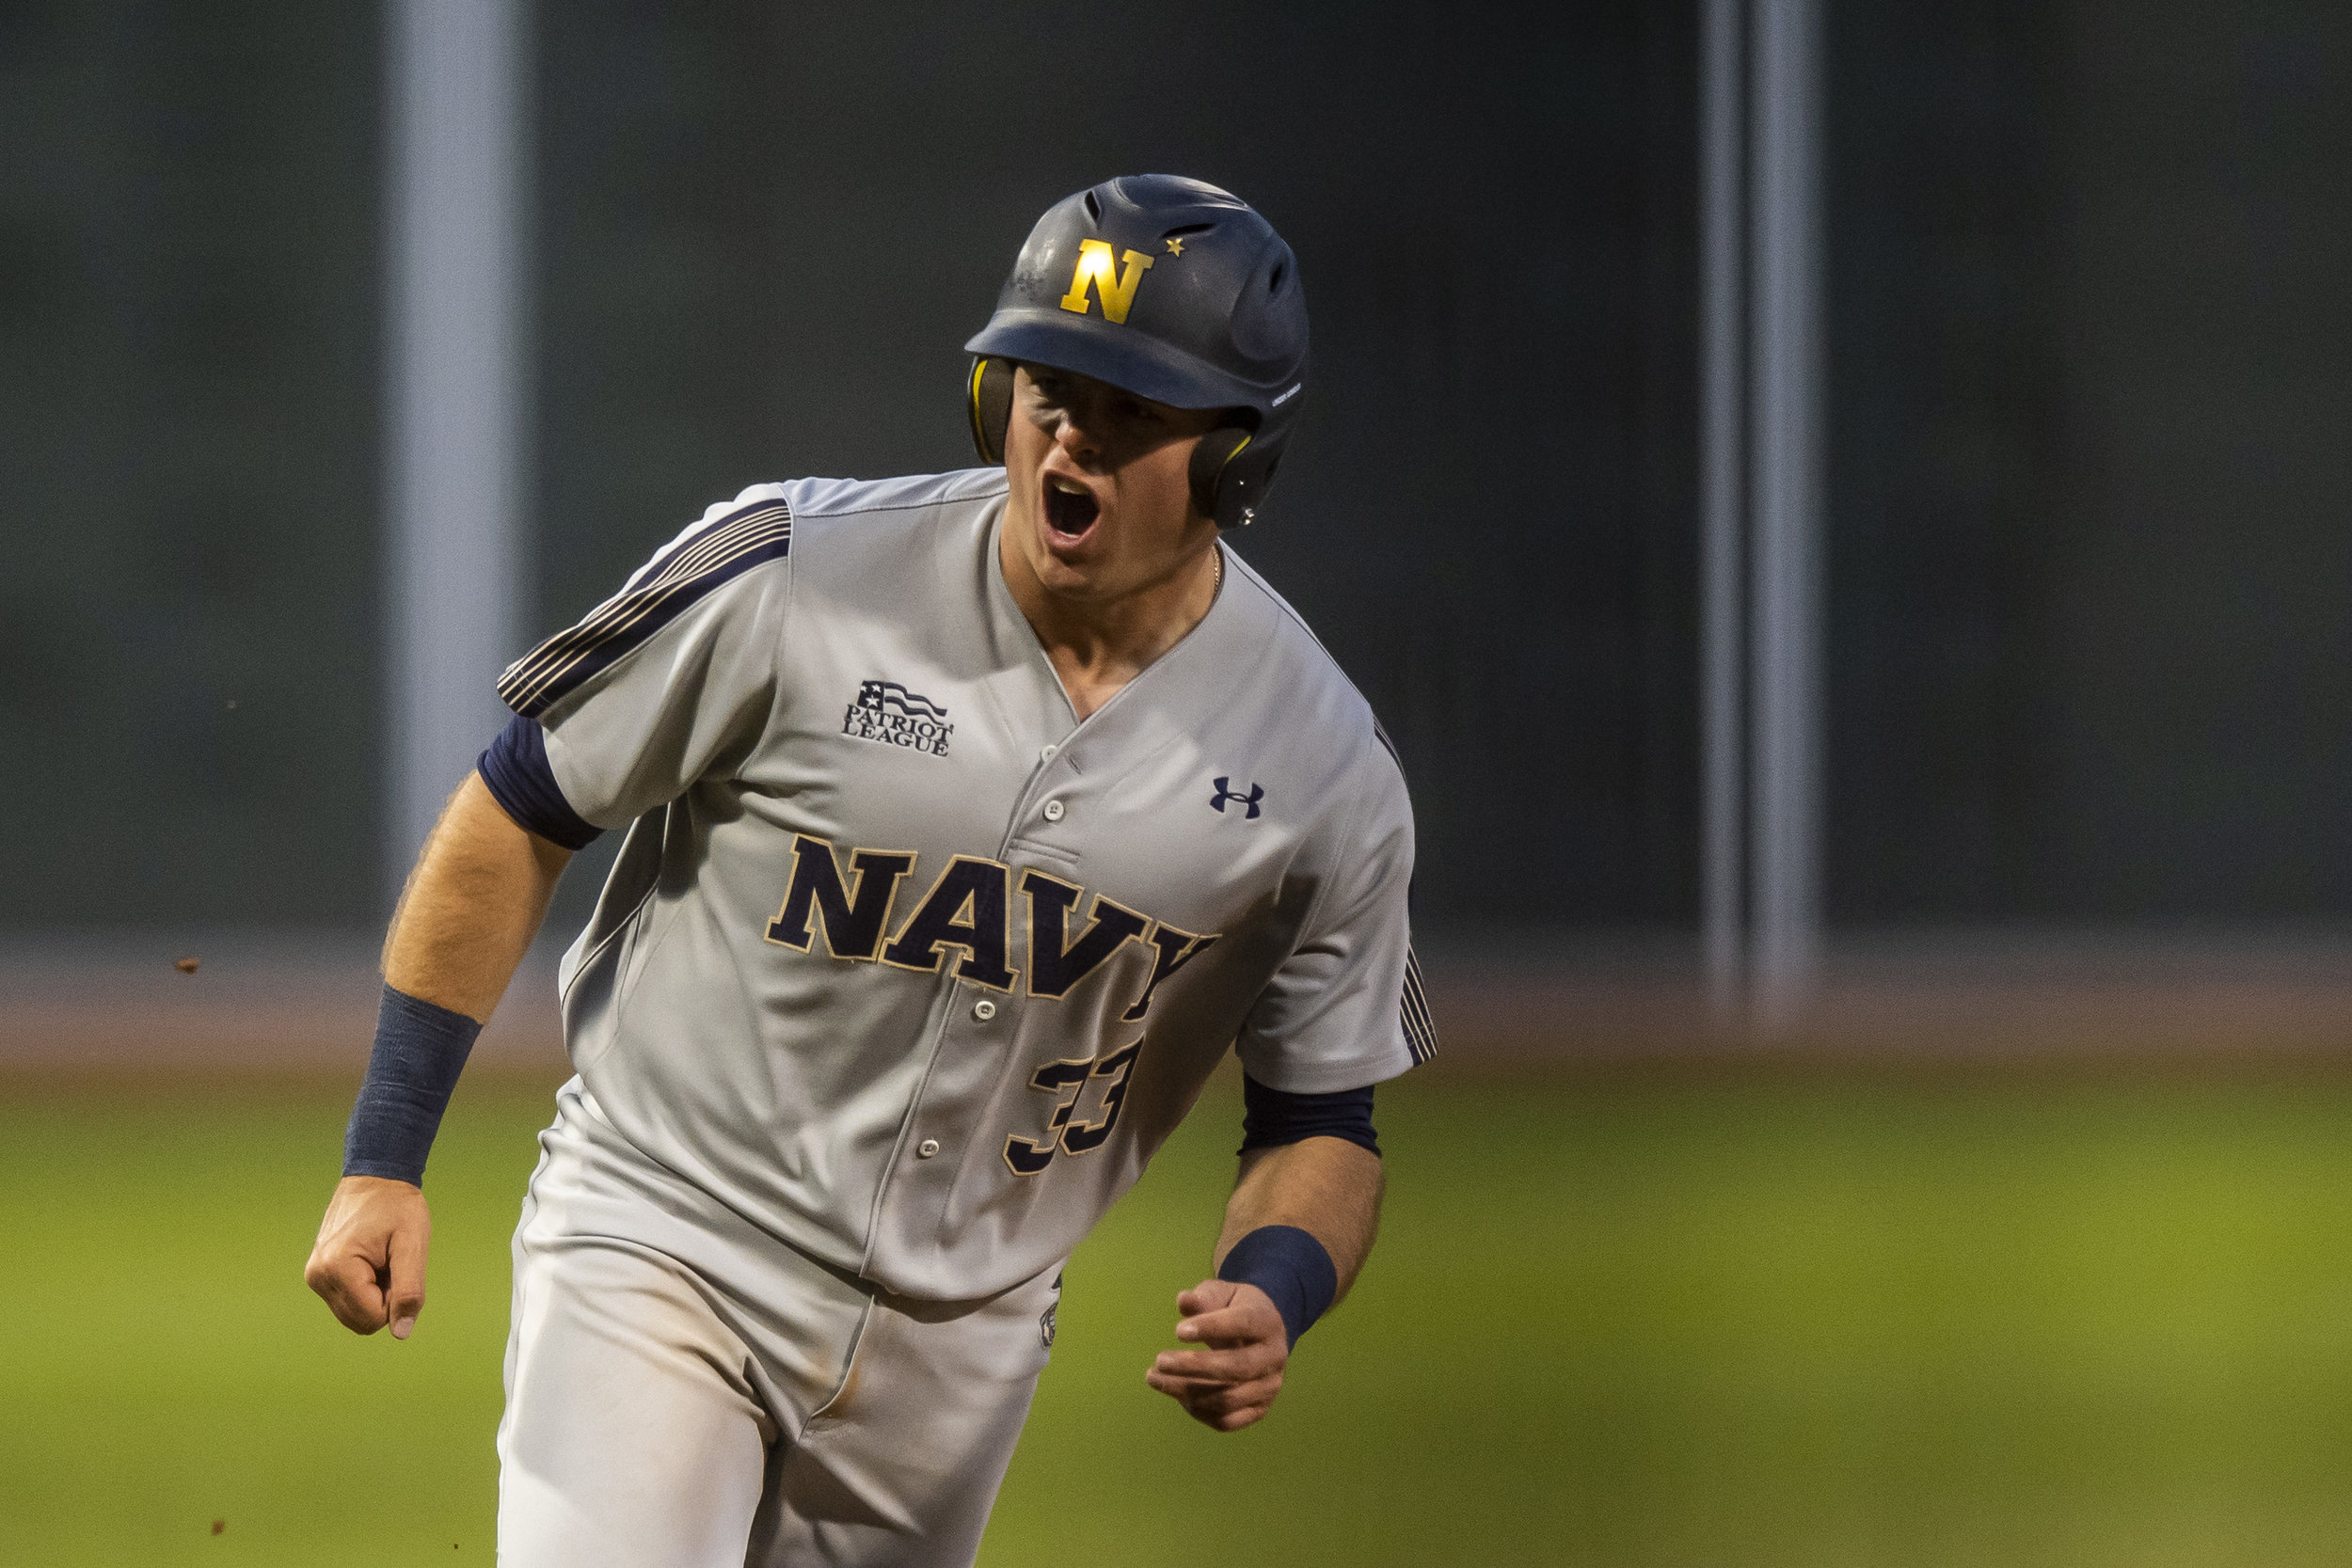 April 20, 2018, Boston, MA: A navy player celebrates after hitting a home run as Army - West Point faces The Naval Academy at Fenway Park in Boston, Massachusetts Friday, April 20, 2018. (Photo by Matthew Thomas/Boston Red Sox)